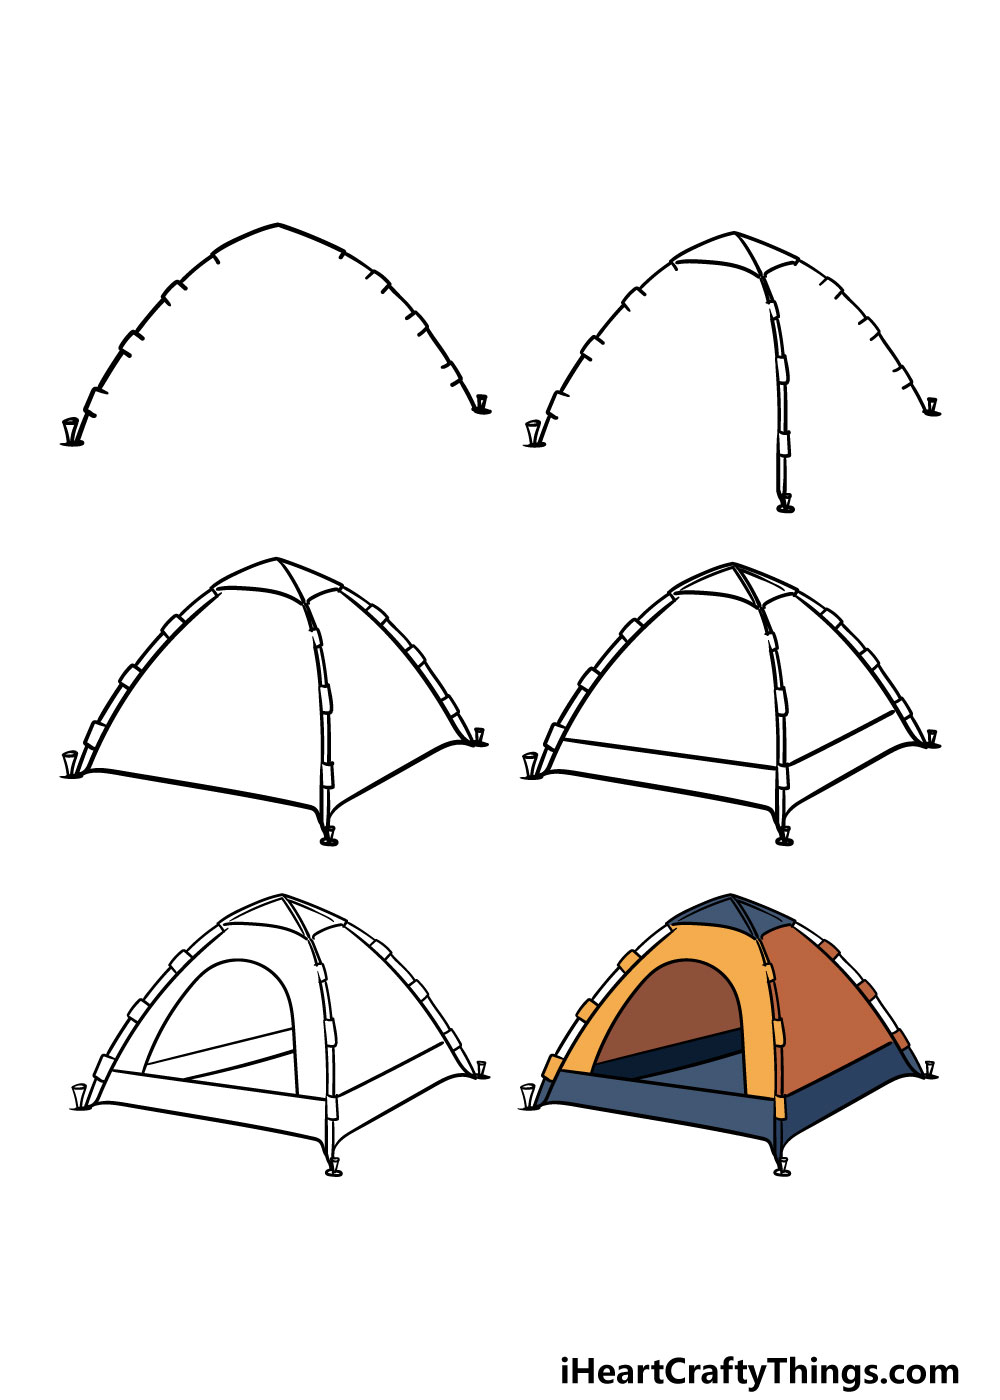 how to draw a tent in 6 steps